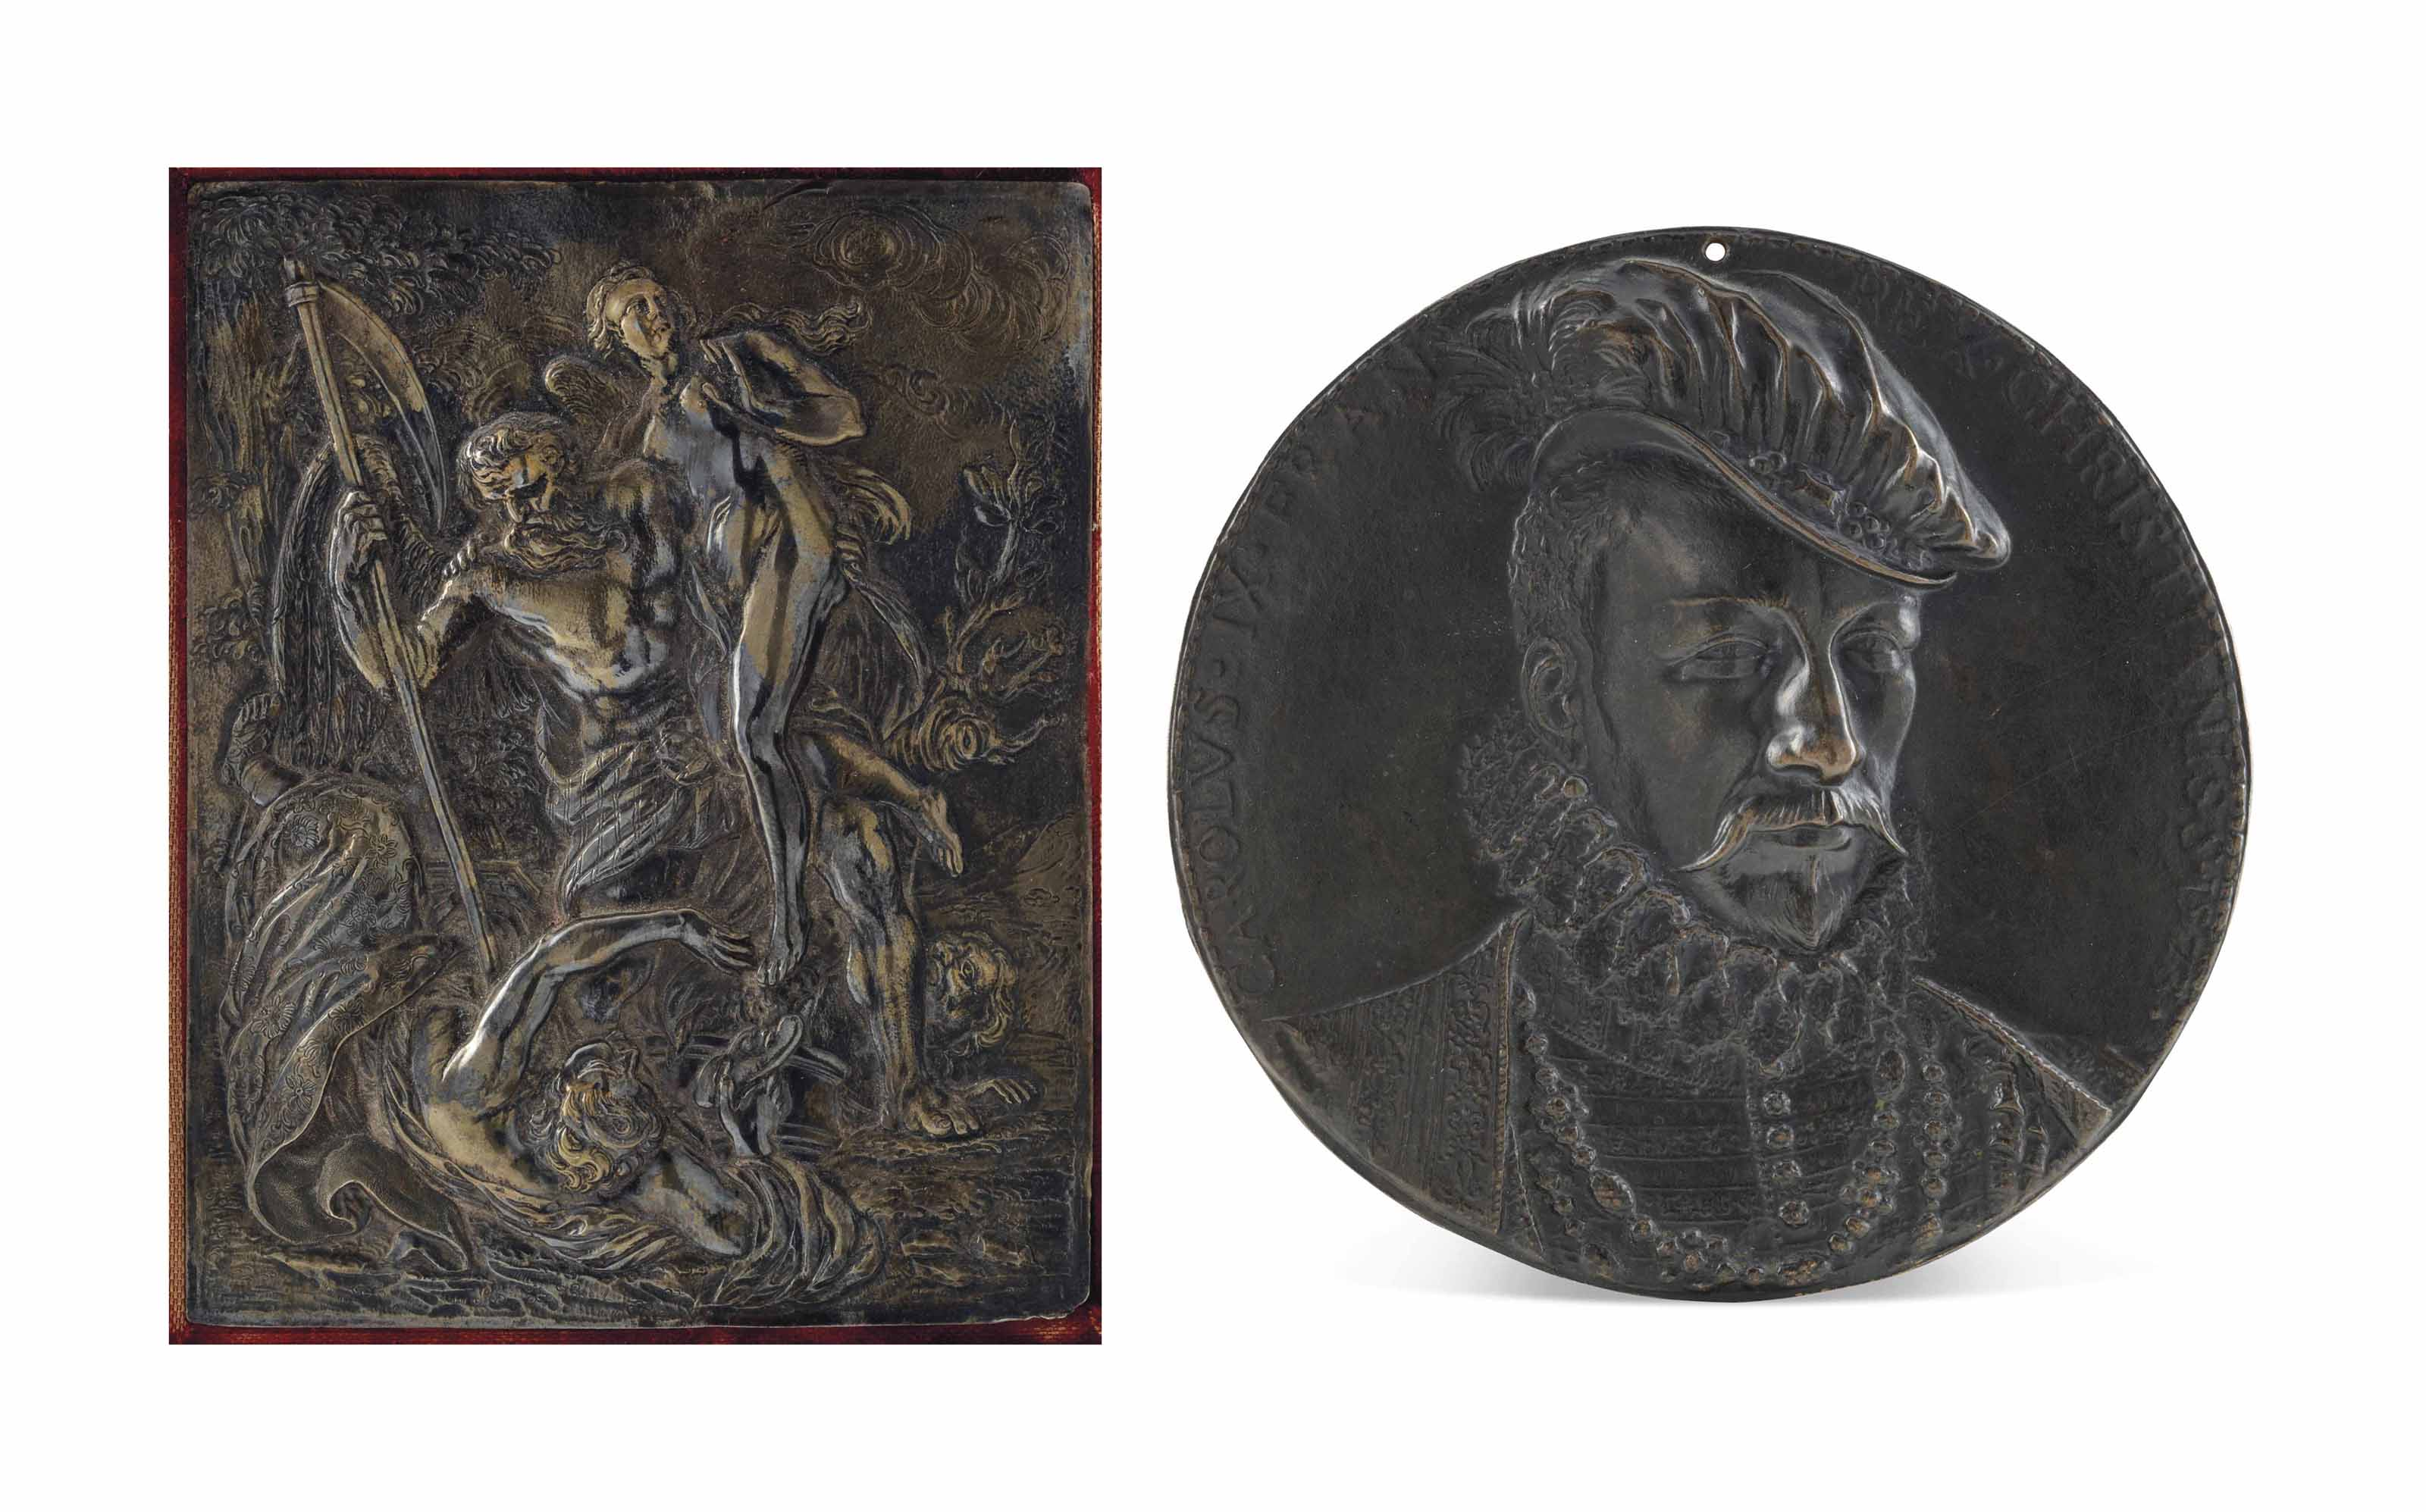 A CIRCULAR BRONZE RELIEF OF CHARLES IX